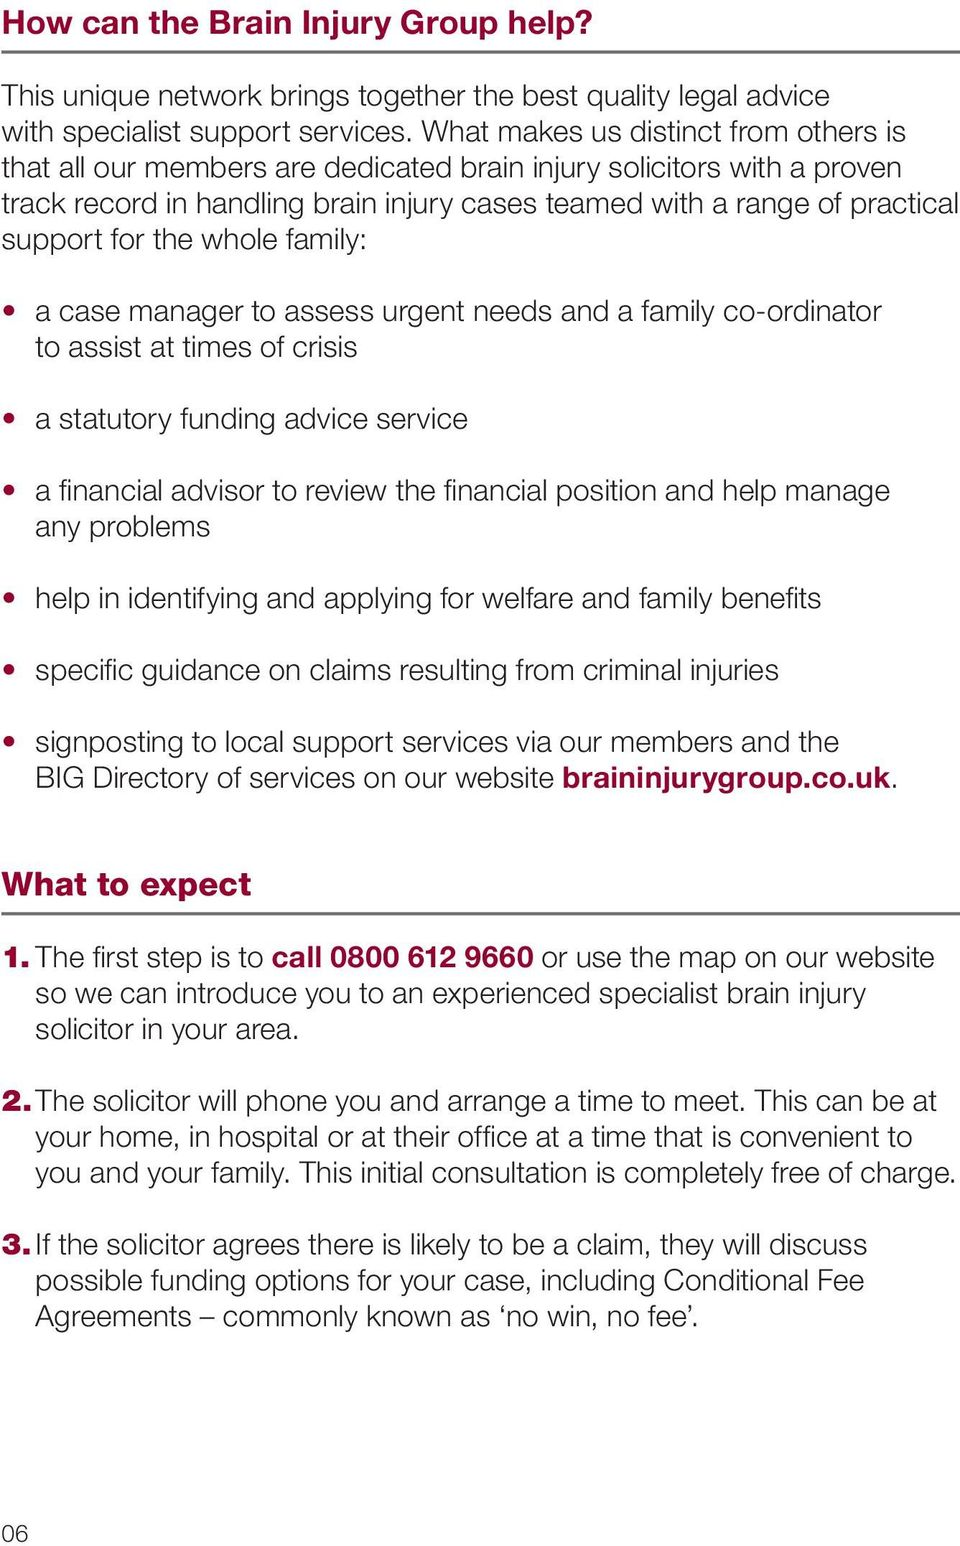 the whole family: a case manager to assess urgent needs and a family co-ordinator to assist at times of crisis a statutory funding advice service a financial advisor to review the financial position